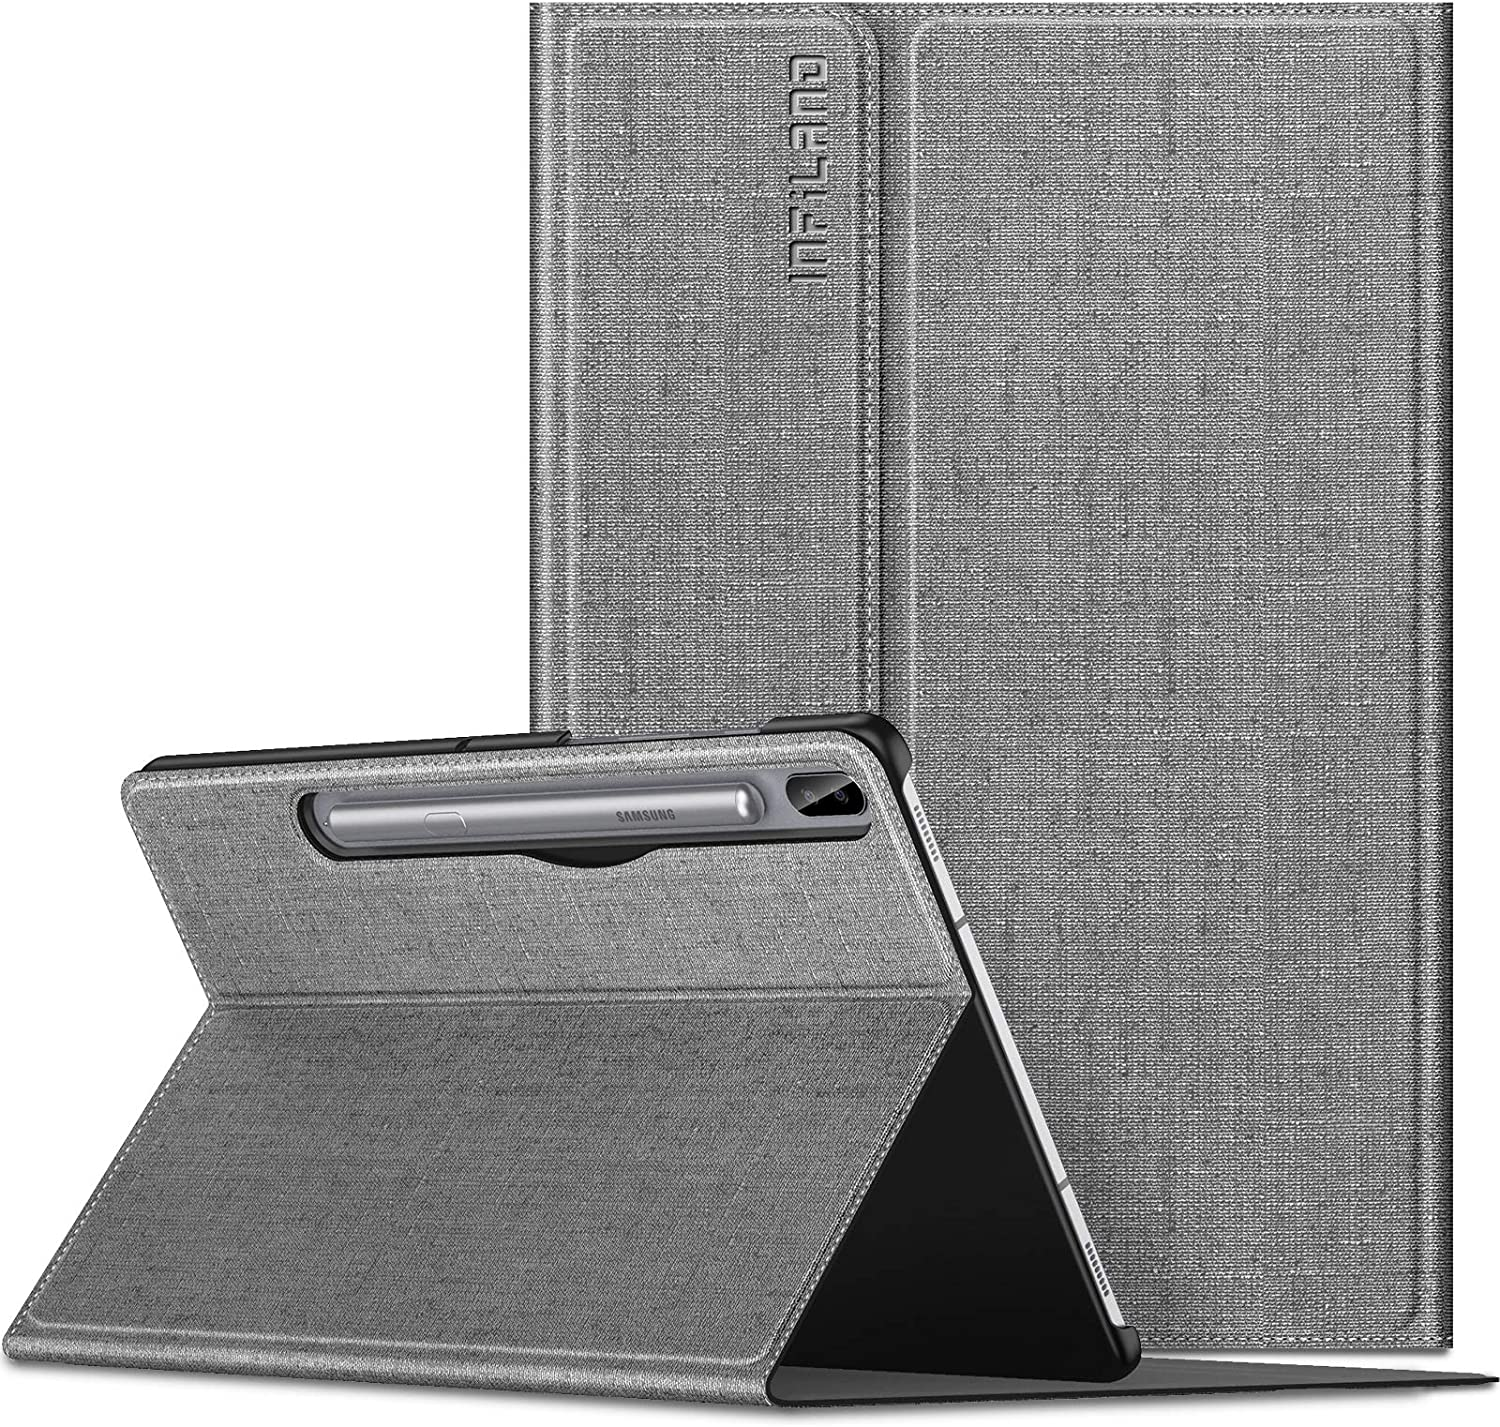 Infiland Galaxy Tab S6 10.5 Case, Multiple Angle Stand Case Fit Samsung Galaxy Tab S6 10.5 Inch Model SM-T860/T865/T867 2019 Release, Support S Pen Wirelss Charging, Auto Wake/Sleep, Gray